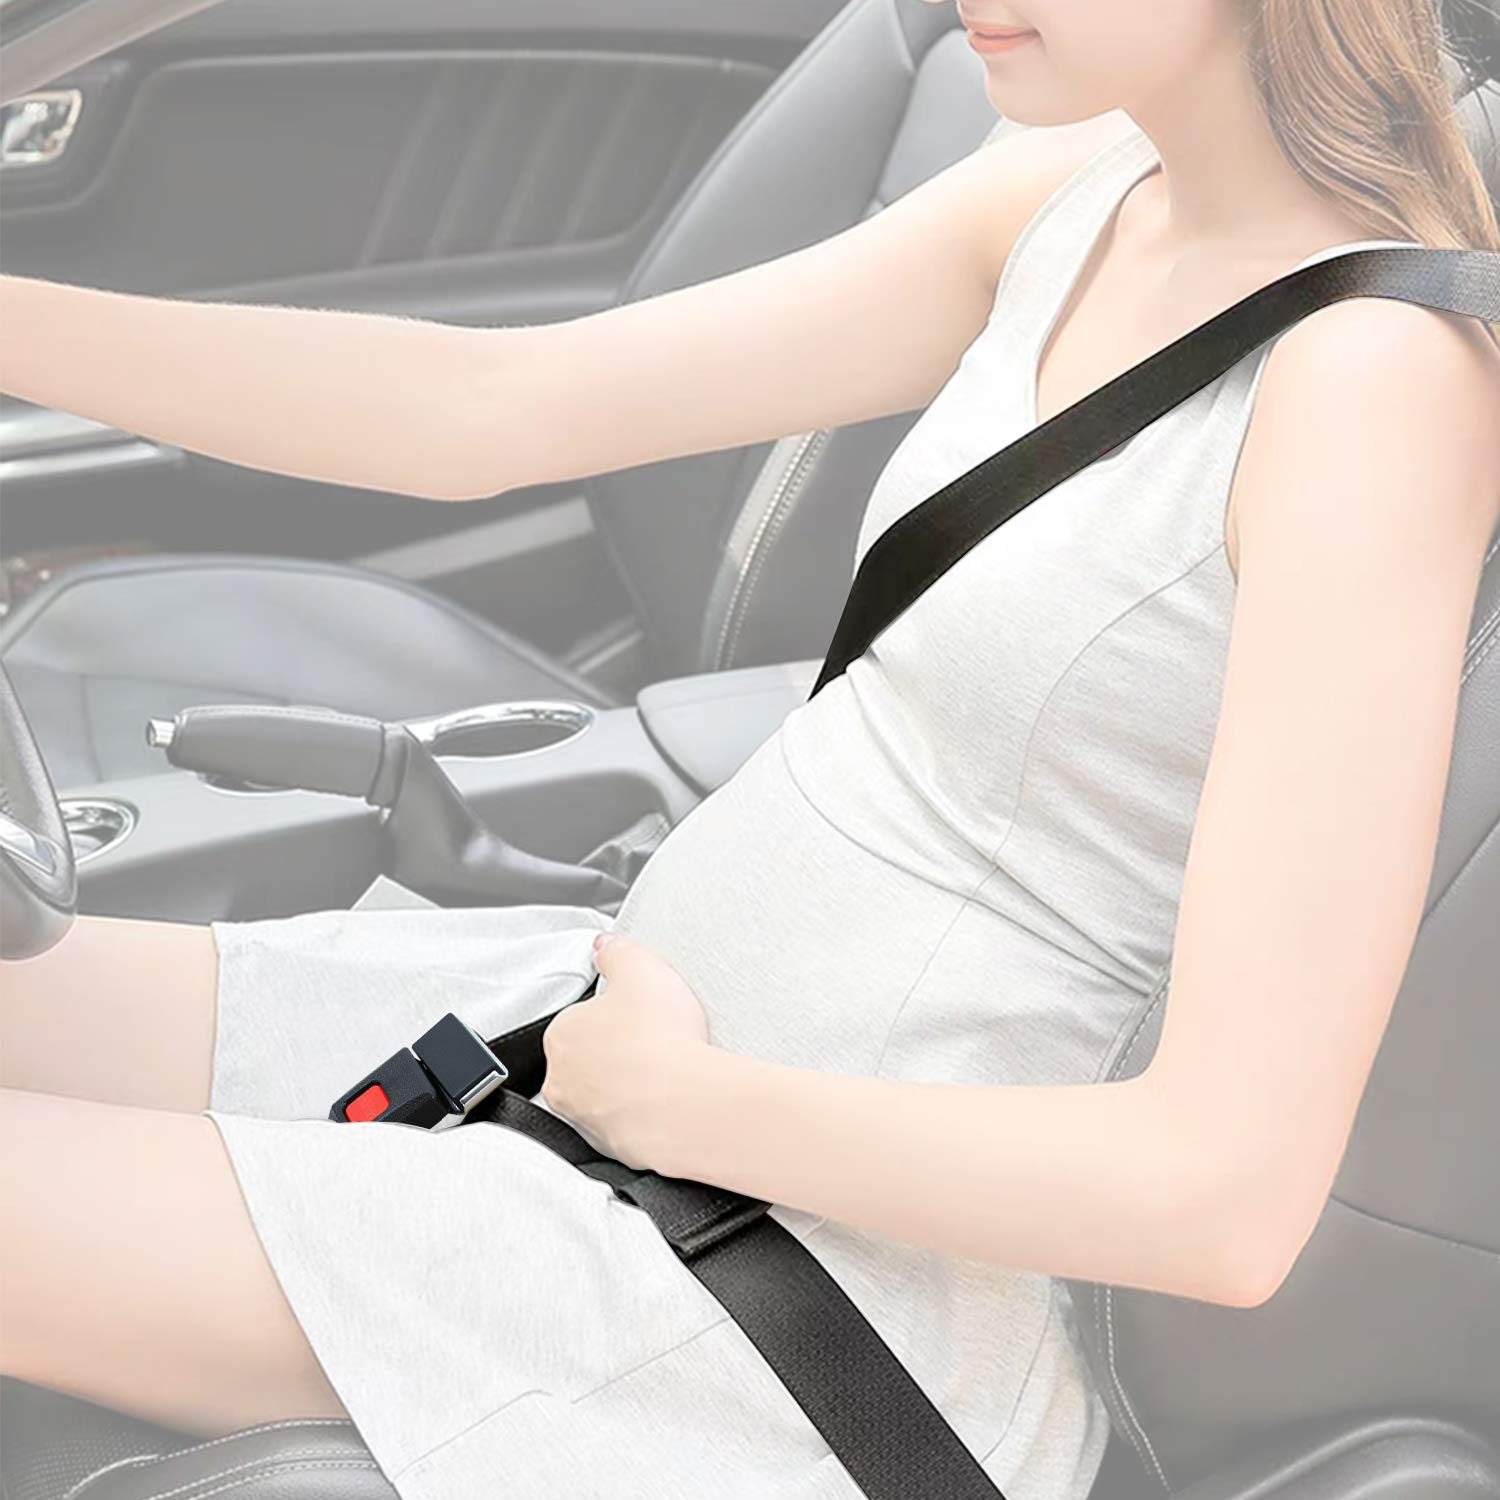 Maternity Car Belt Adjuster, TFY Car Pregnant Belt for Expectant Mothers, Comfort & Safety to Protect Unborn Baby - Black by TFY